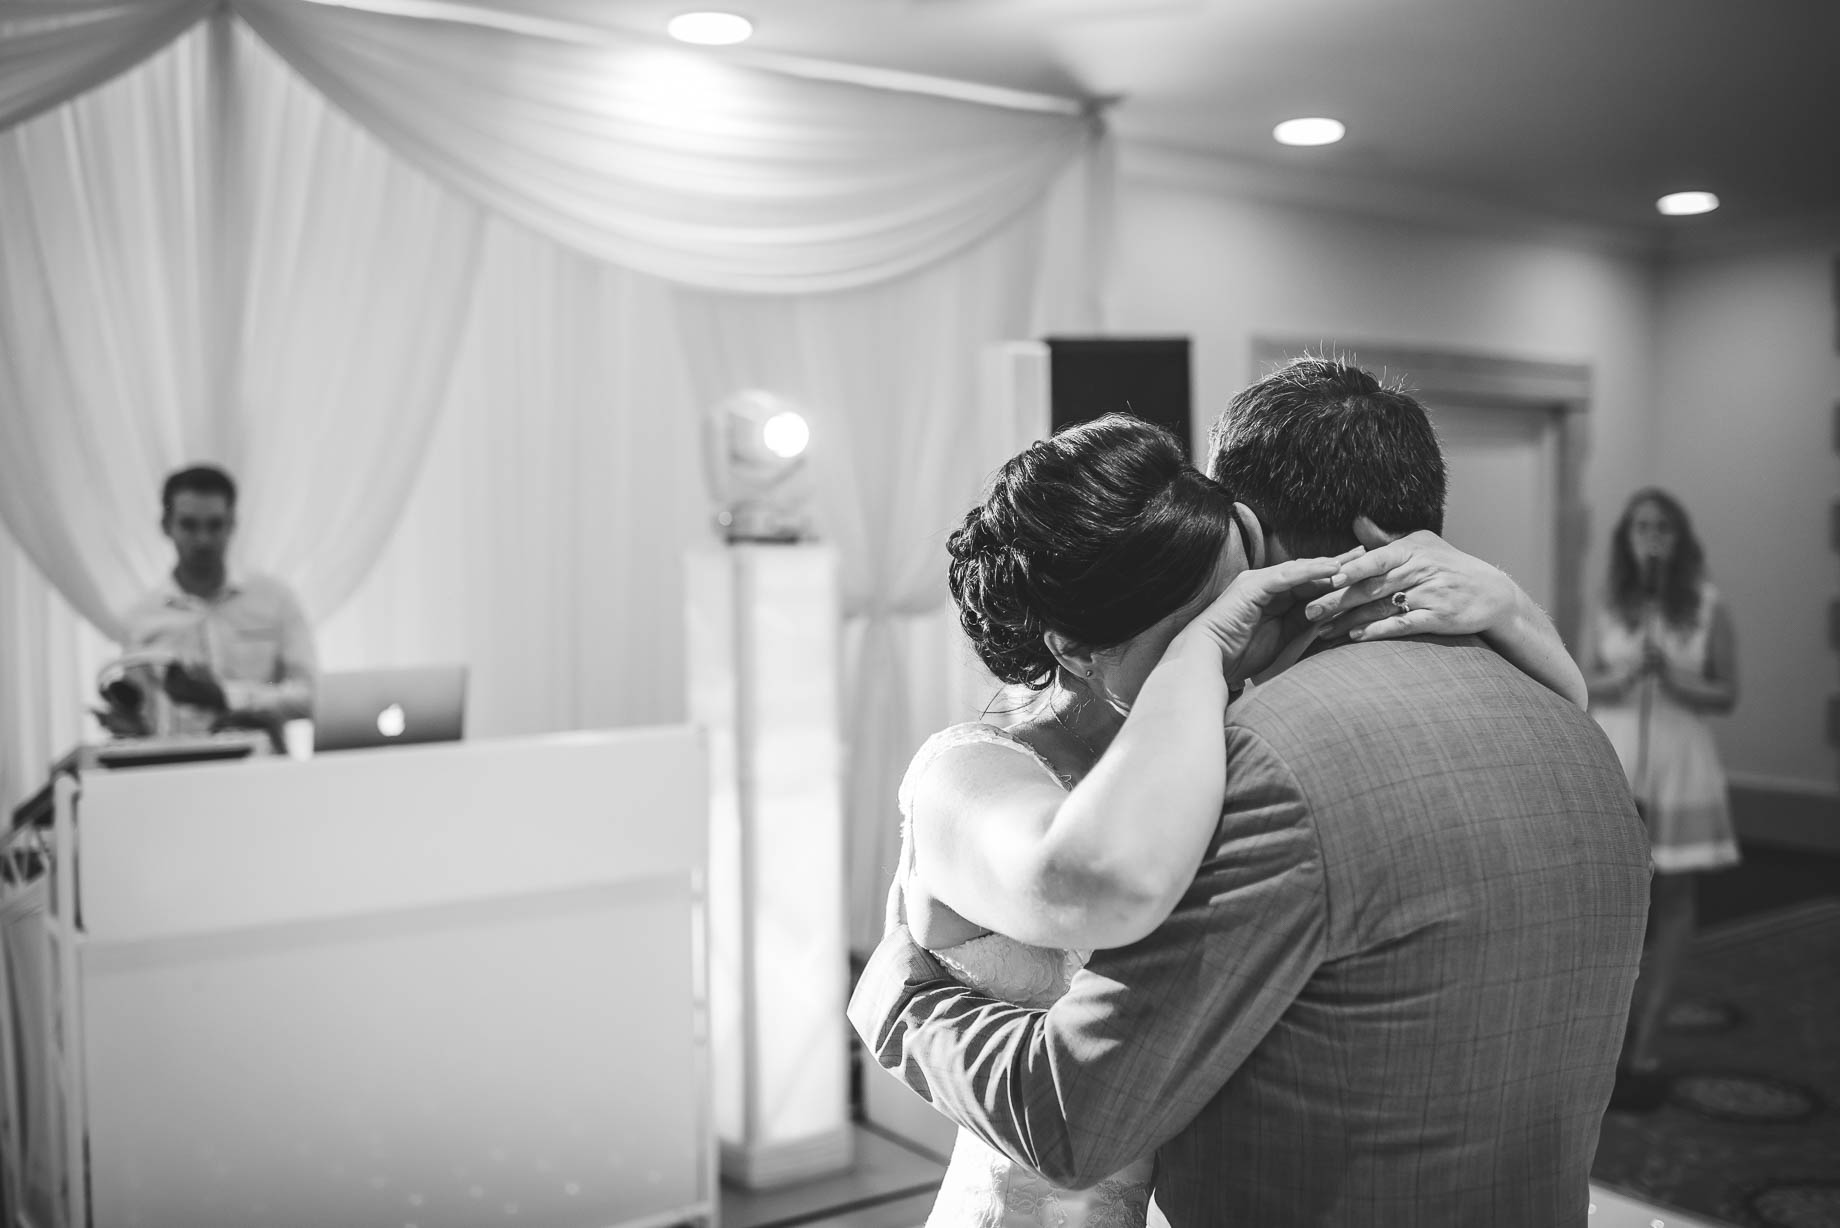 Luton Hoo wedding photography by Guy Collier Photography - Lauren and Gem (170 of 178)